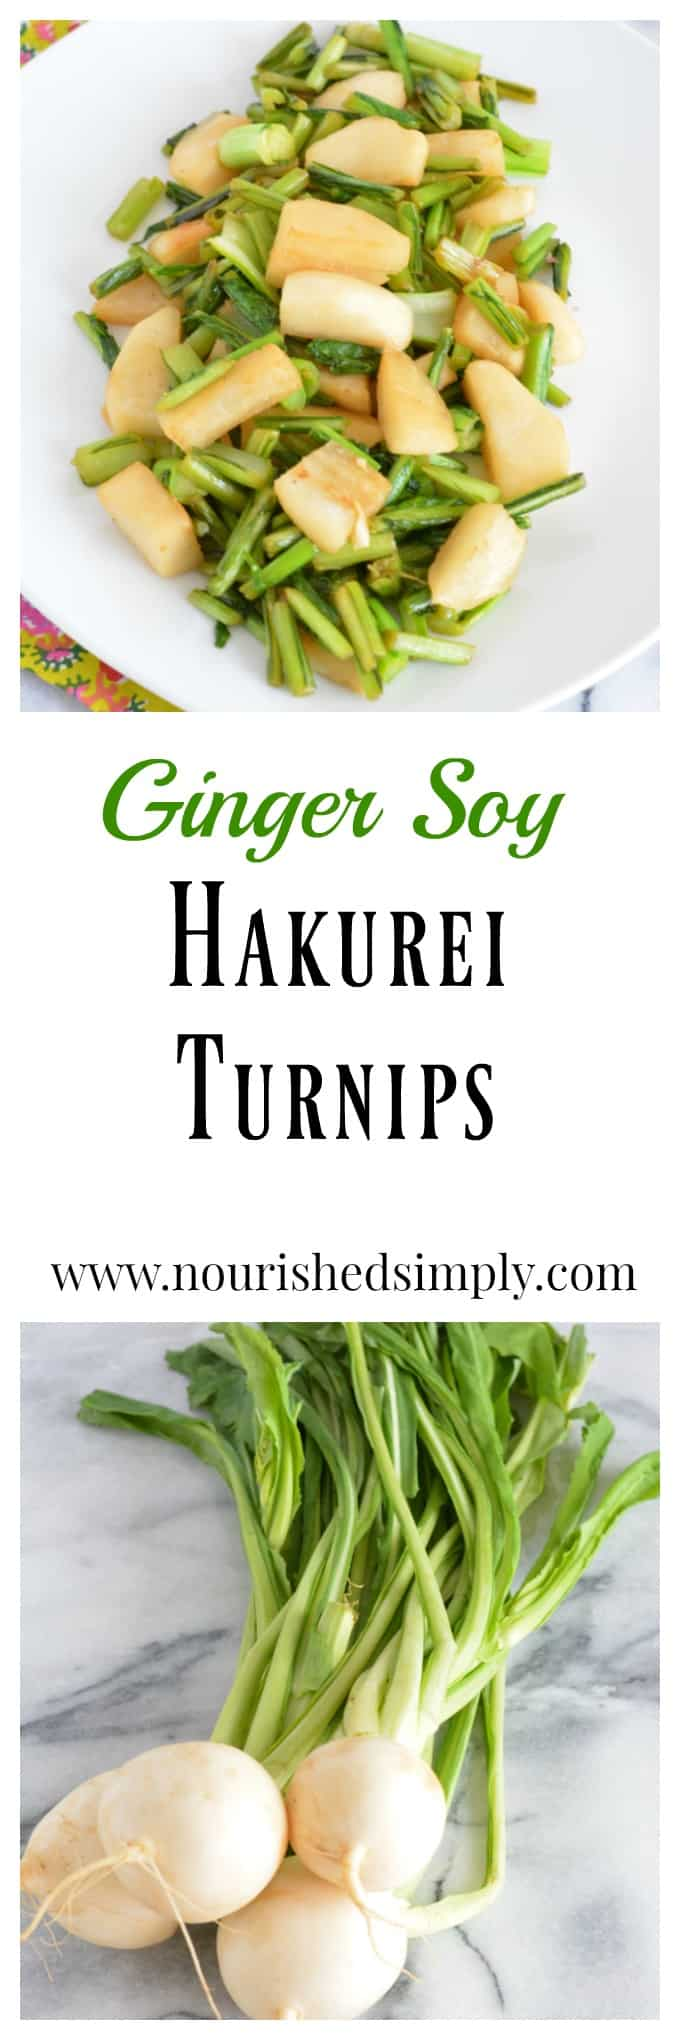 Reduce for waste with this recipe for Ginger Soy Hakurei Turnips